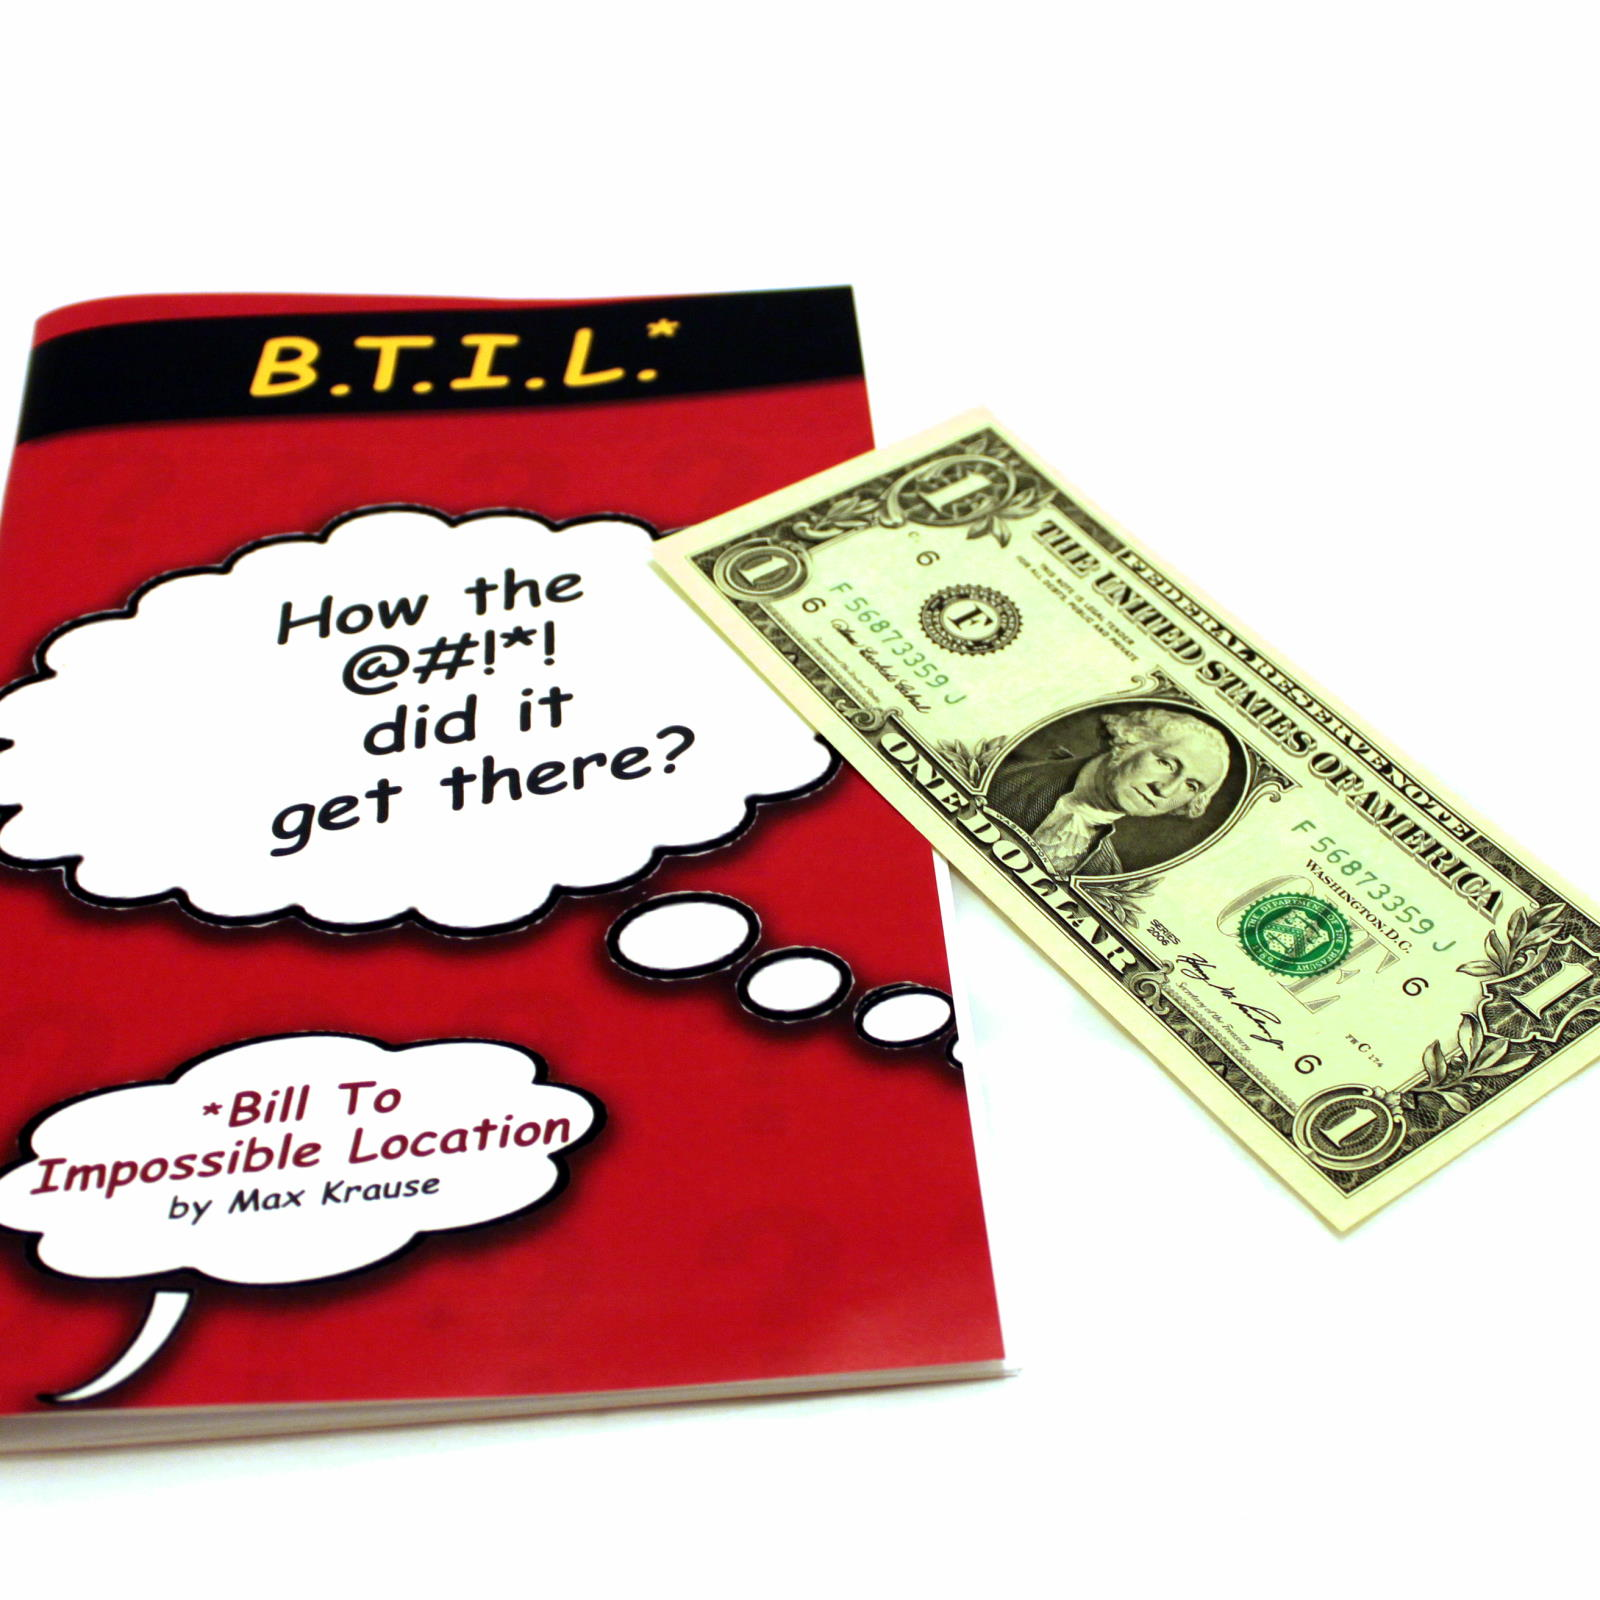 Bill To Impossible Location (B.T.I.L.) by Innovative Deceptions